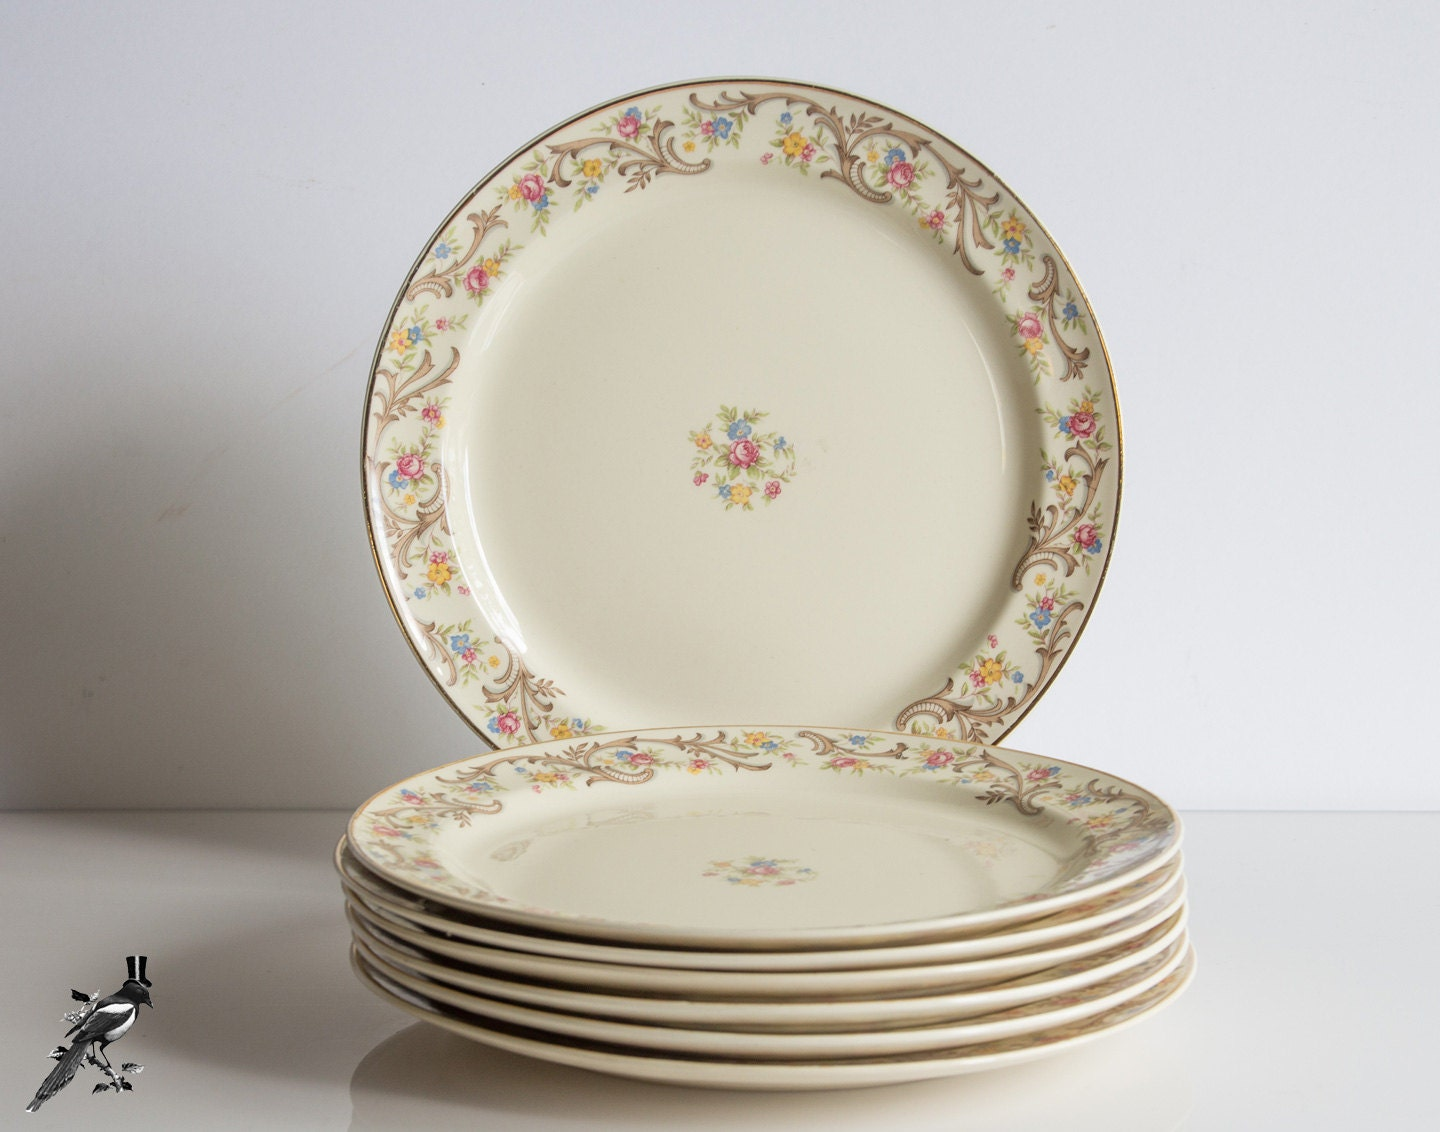 Mexican Food At Its Roots Oaxaca as well Cake Or Death Part Ii in addition Set Of 7 Taylor Smith Taylor Usa Pattern in addition Parkin Lottie Shaw in addition Paella. on mid century cake